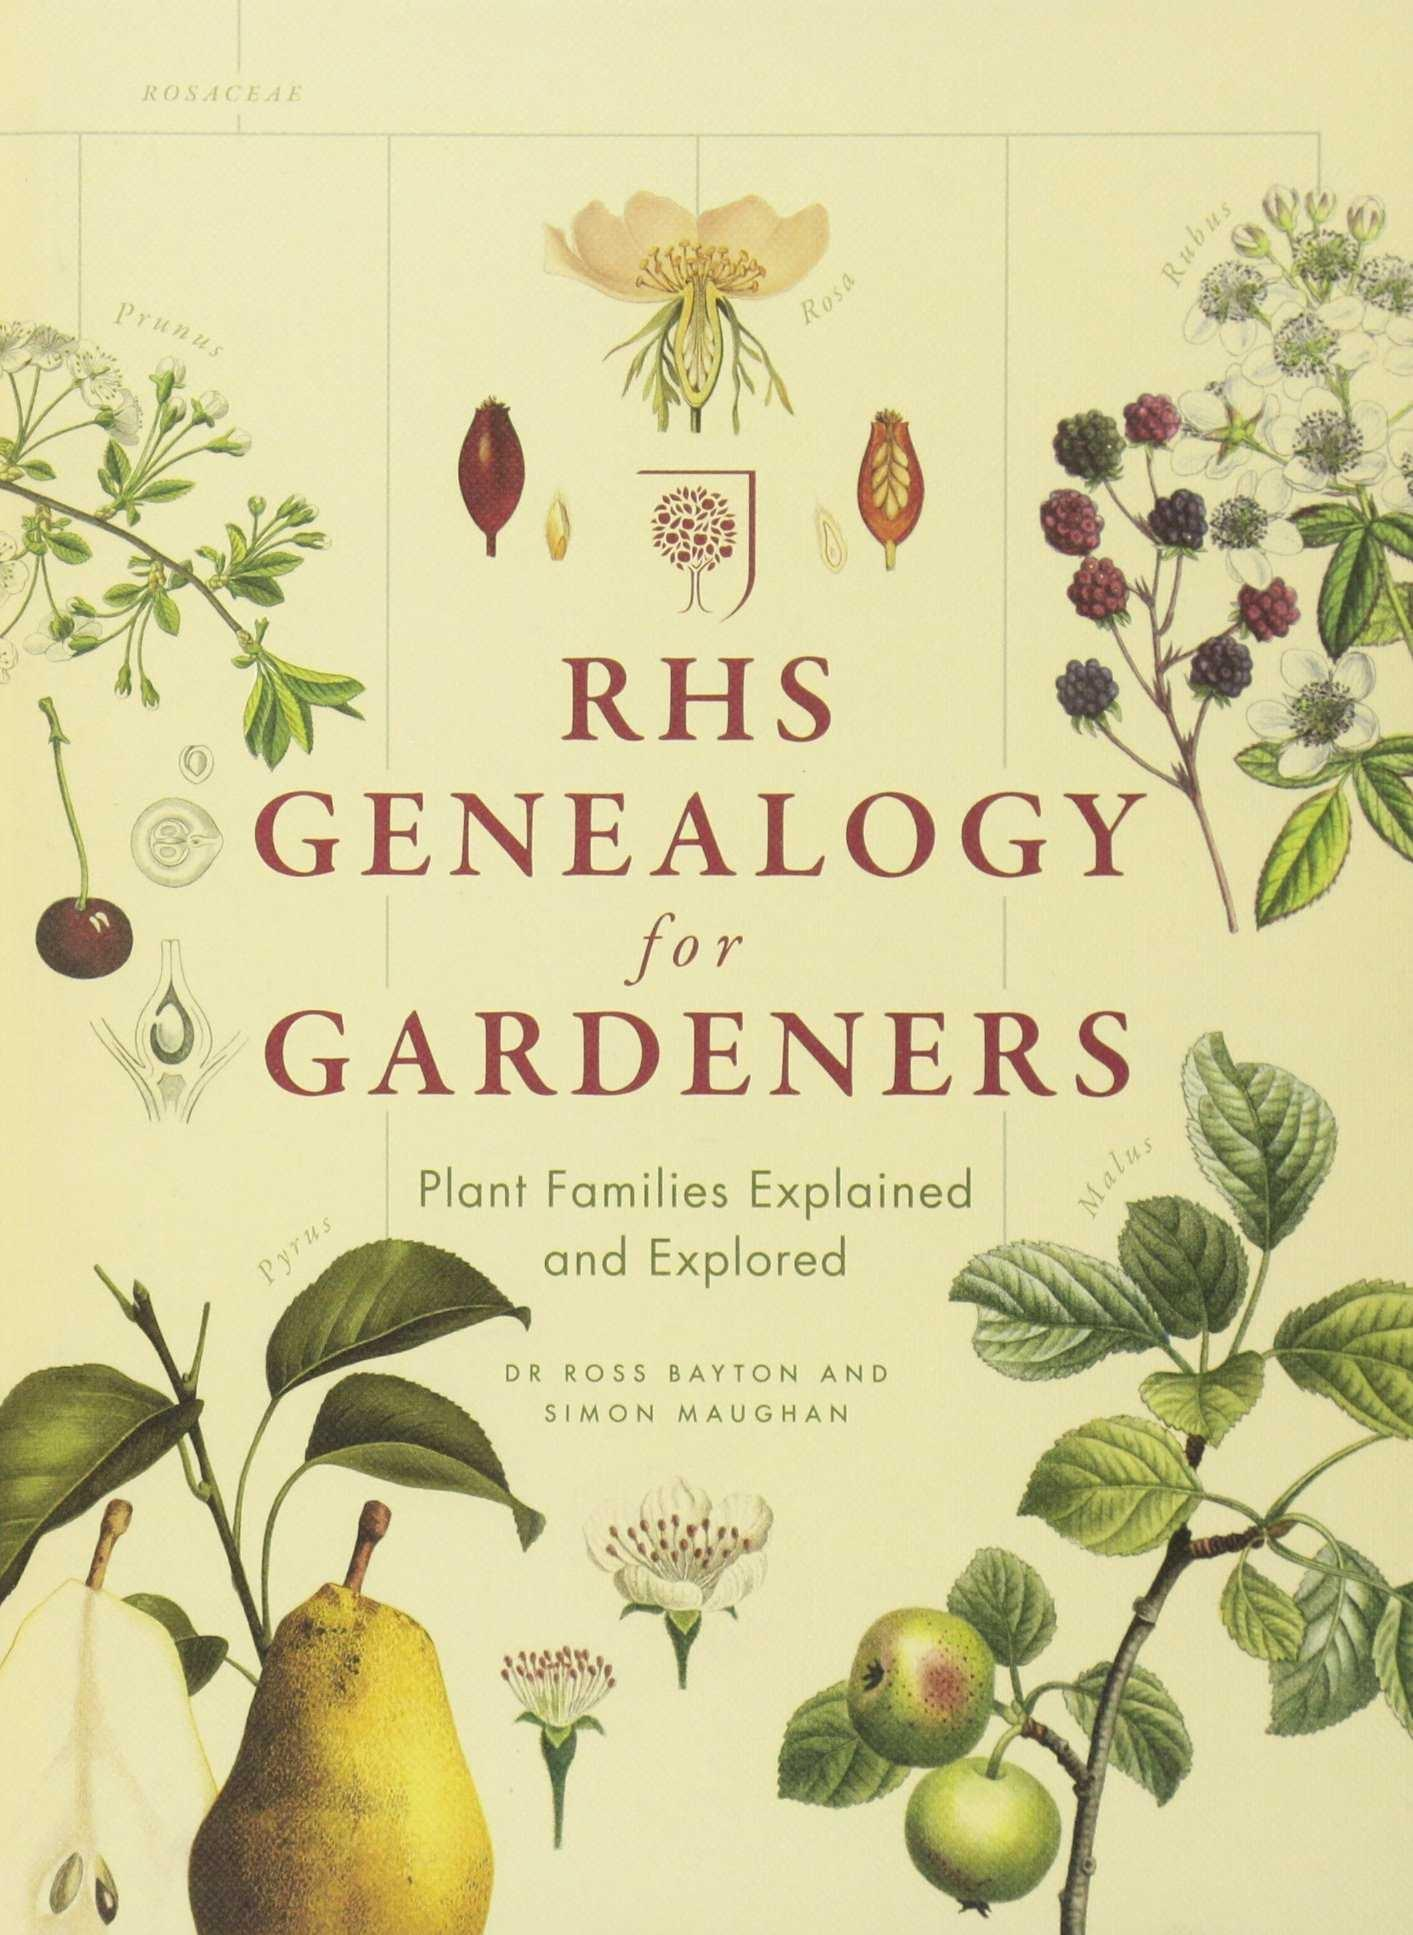 RHS GENEALOGY FOR GARDENERS. PLANT FAMILIES EXPLORED AND EXPLAINED